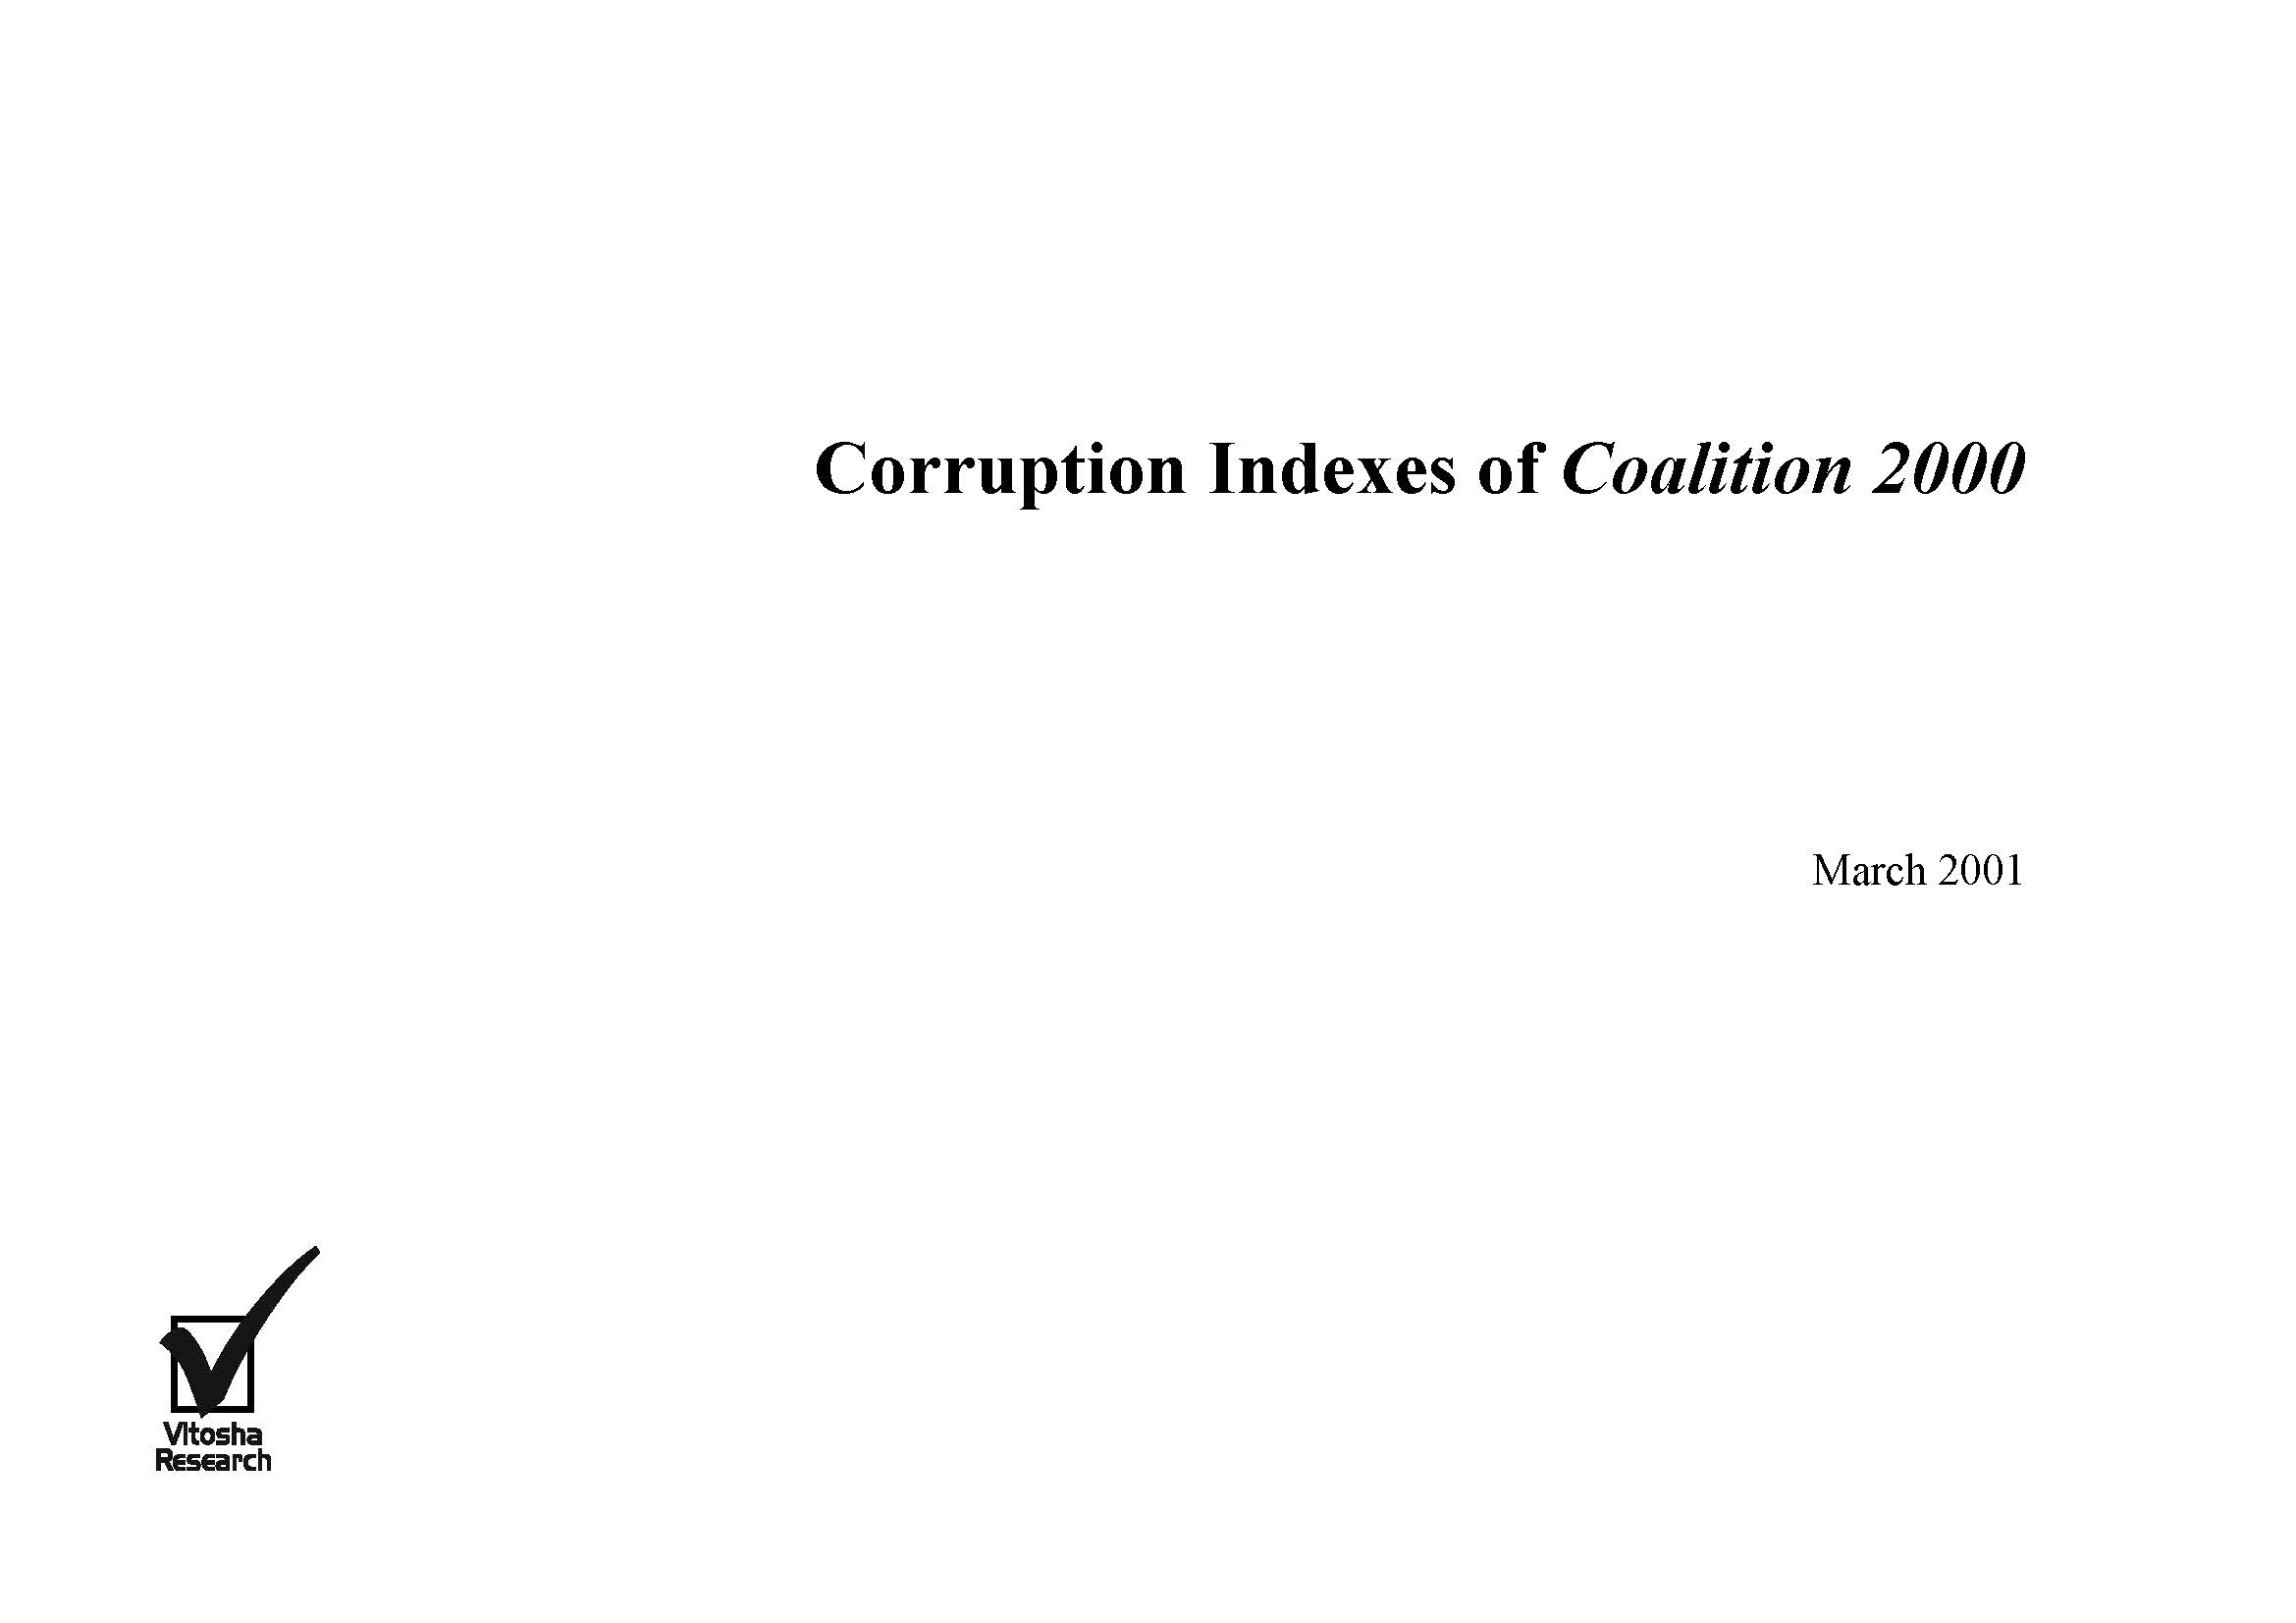 Corruption Indexes of Coalition 2000, March 2001